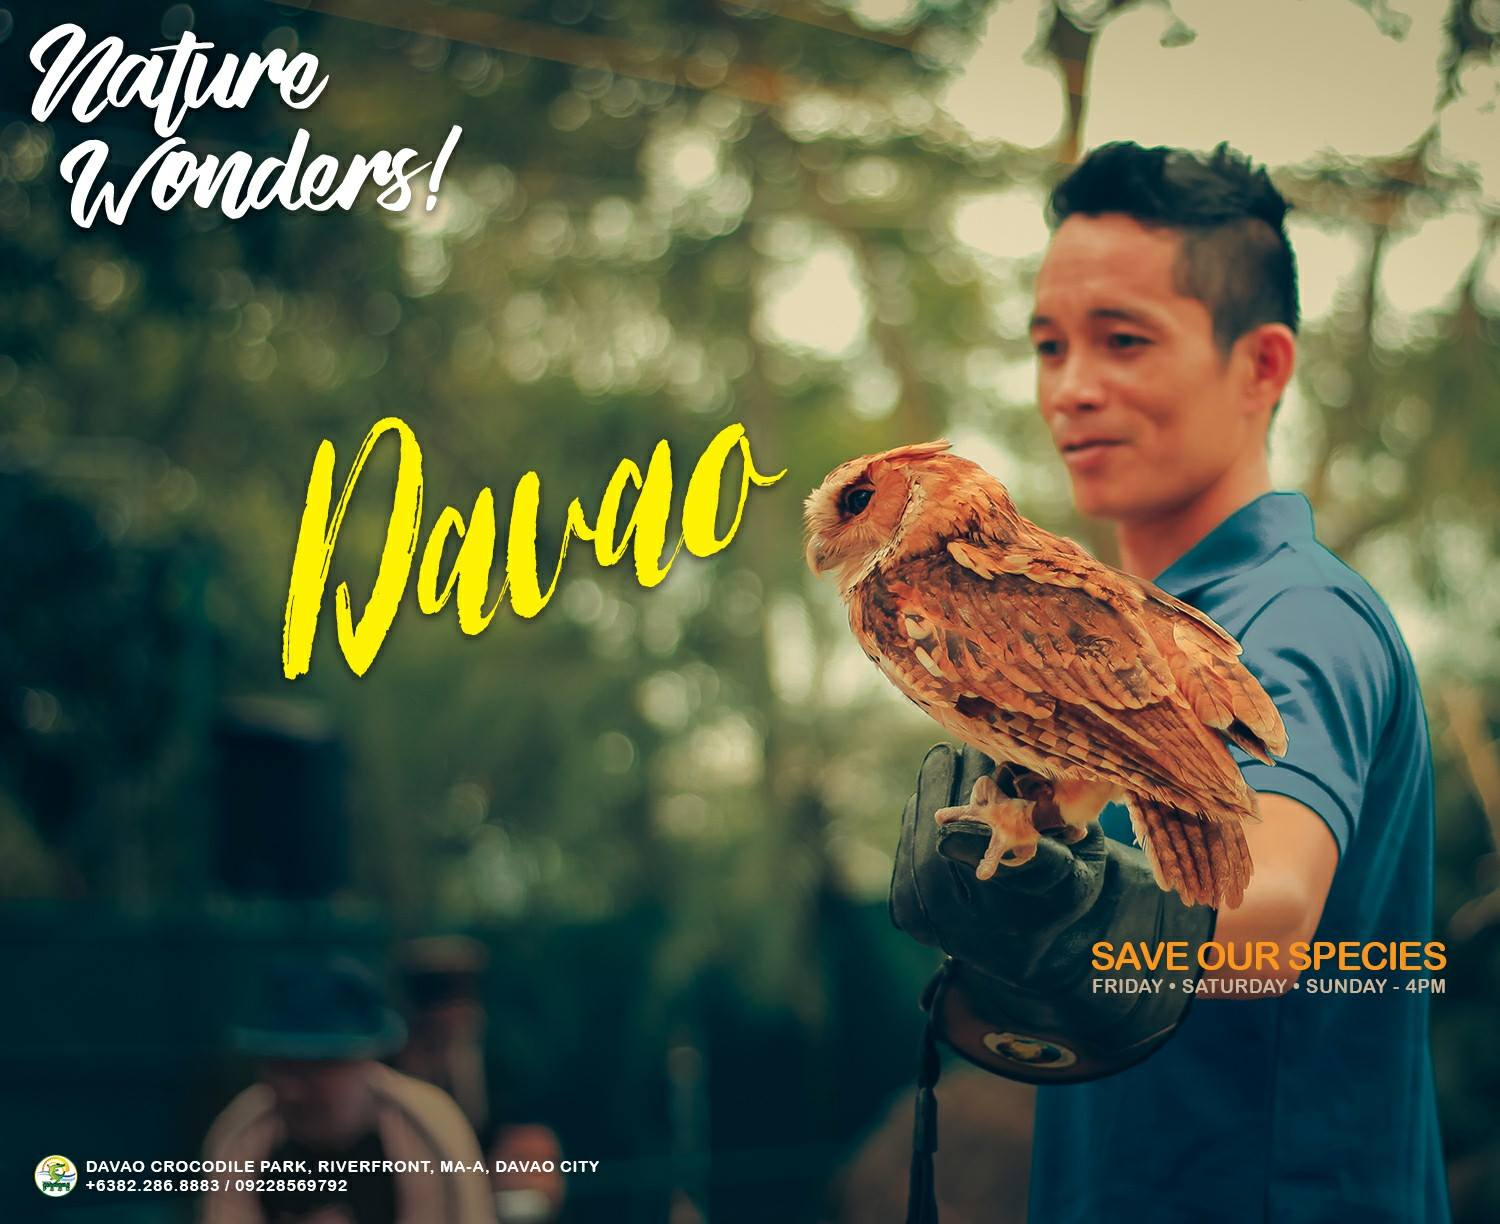 https://tourism.davaocity.gov.ph/wp-content/uploads/2019/04/43036341_333044500574512_5419860810400792576_o.jpg